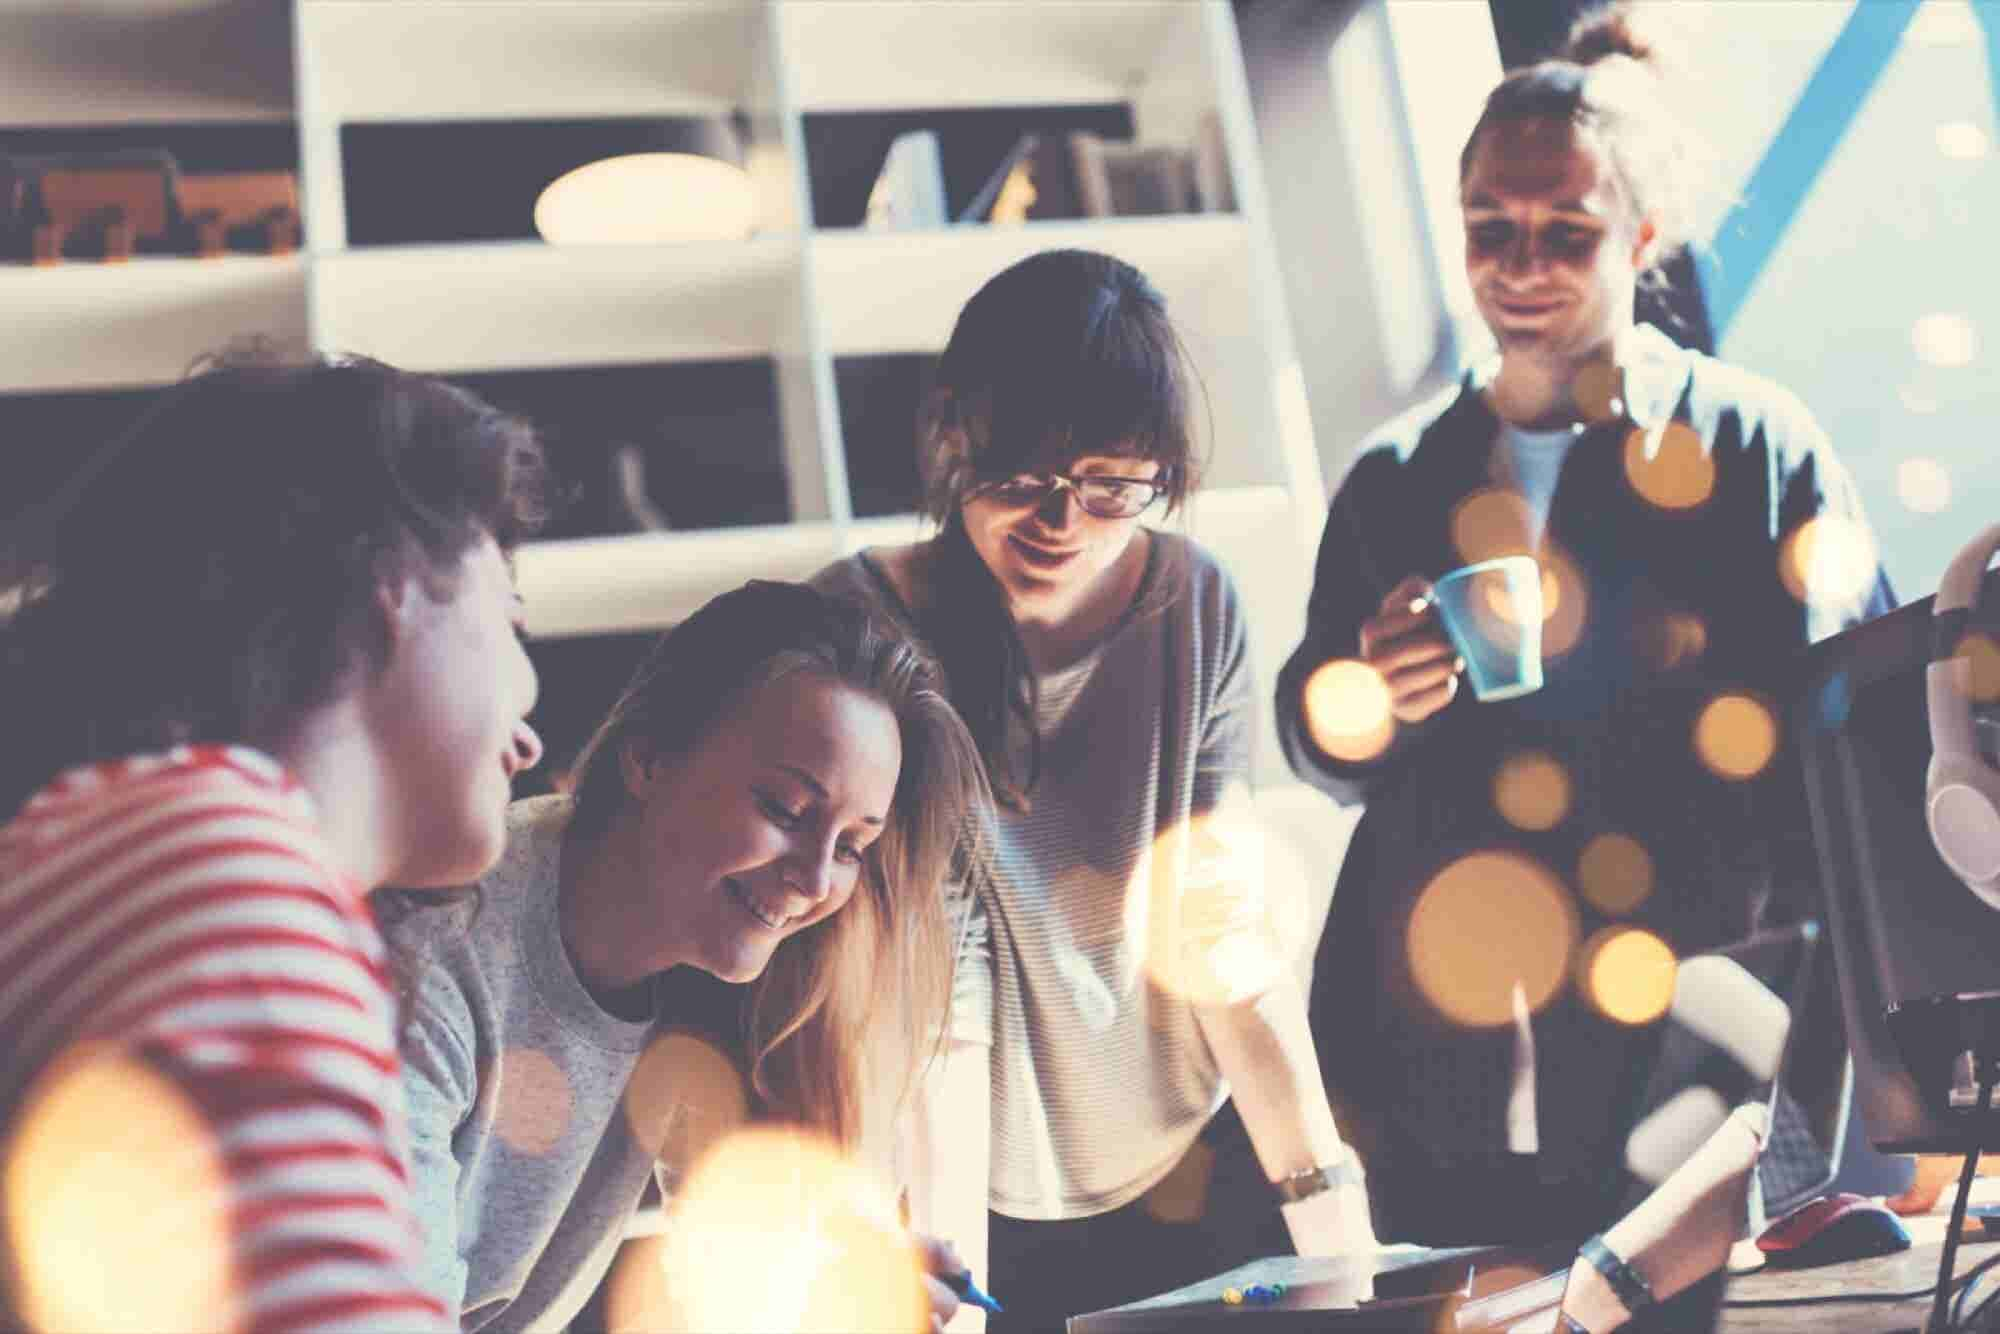 10 Millennial Leadership Qualities That Contribute to a Positive Office Culture